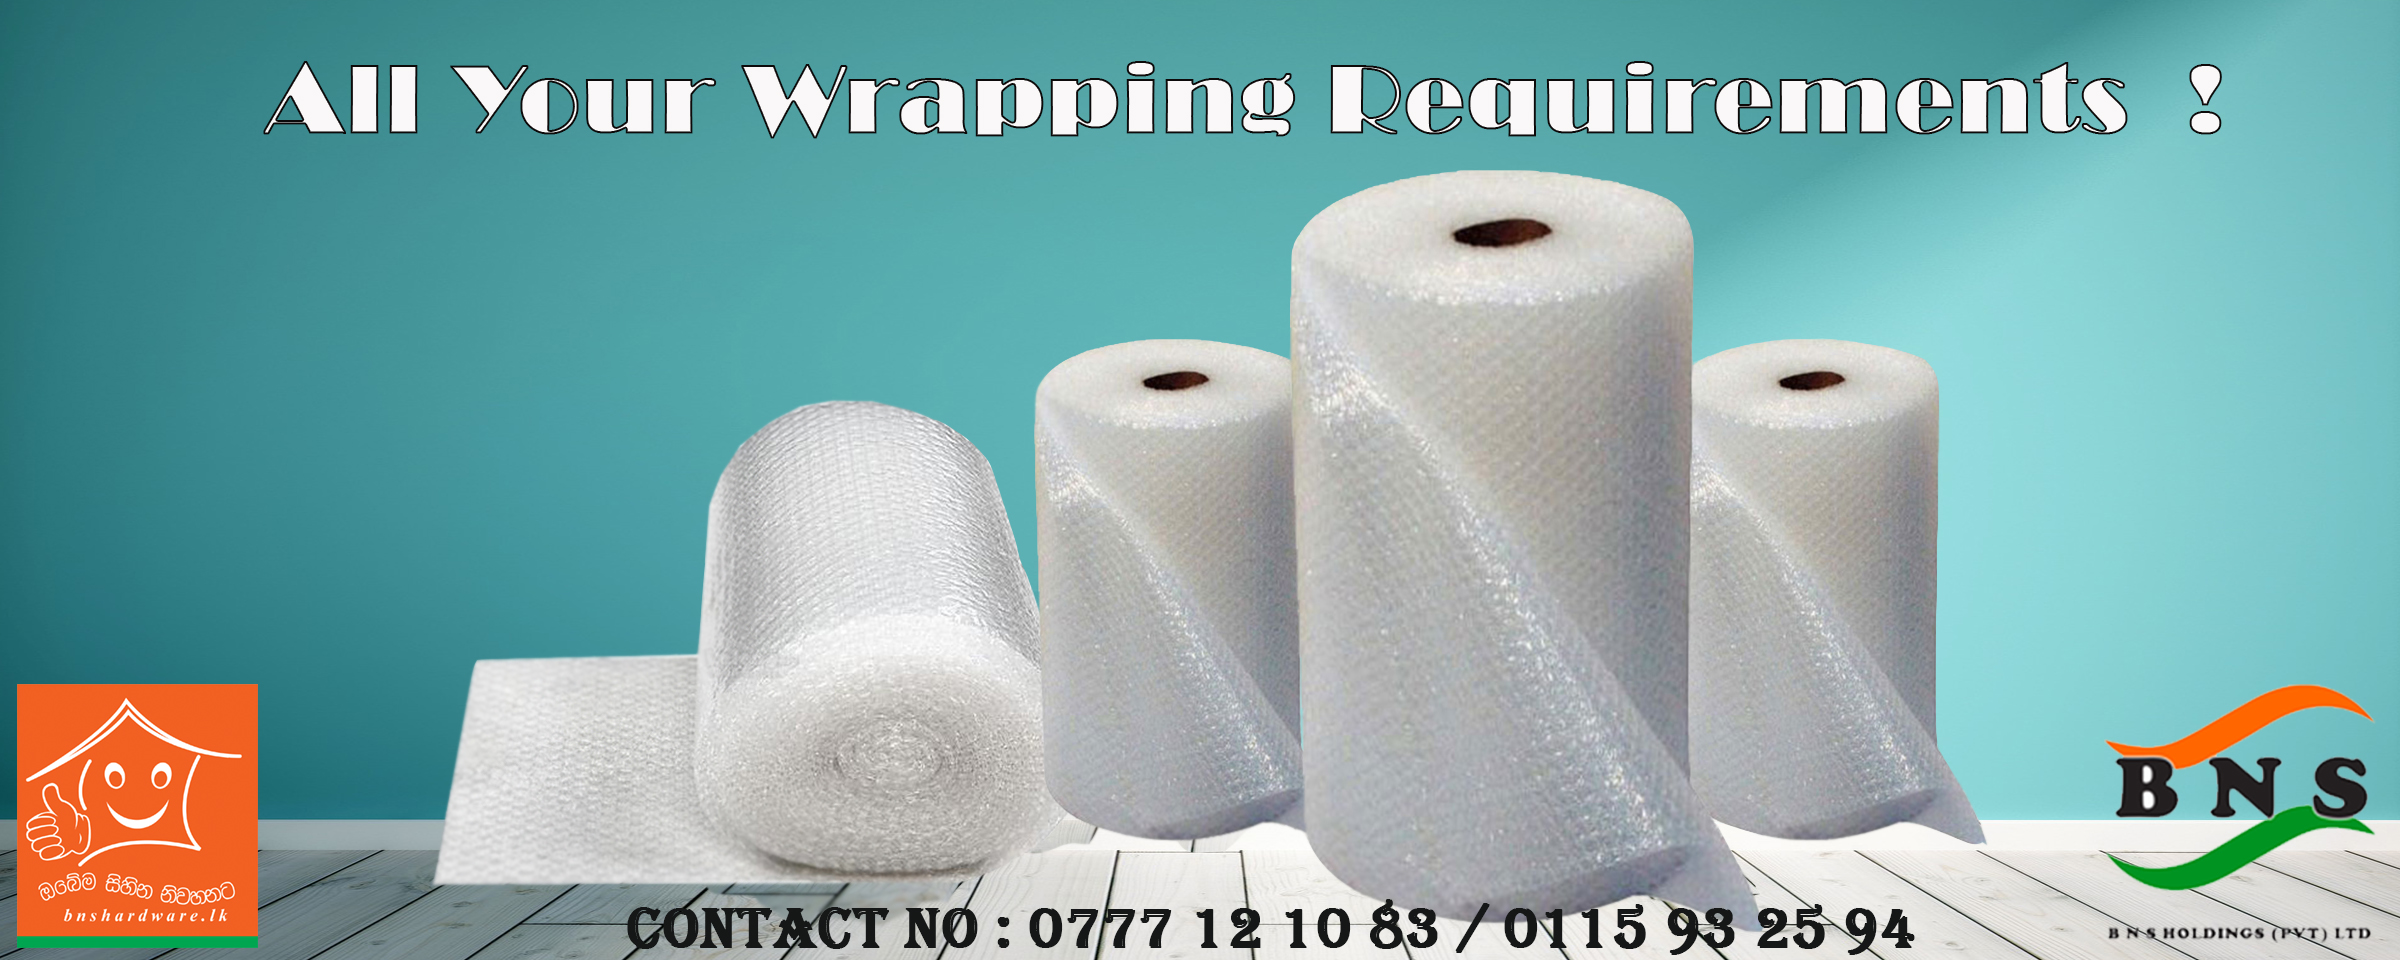 Wrapping Items